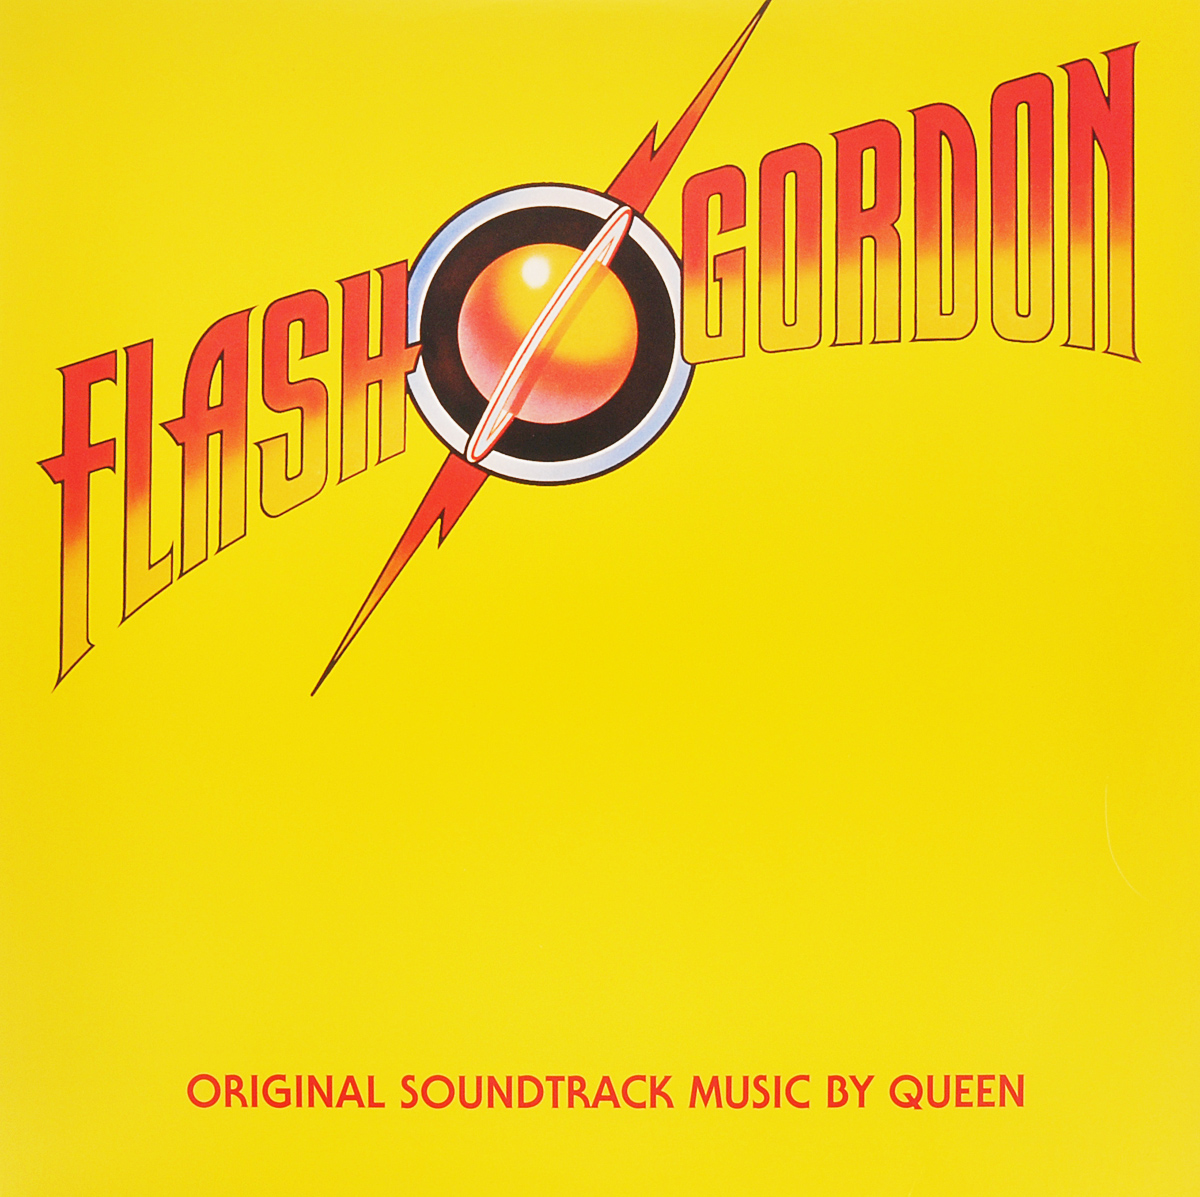 цена на Queen Queen. Flash Gordon. Original Soundtrack Musik (LP)